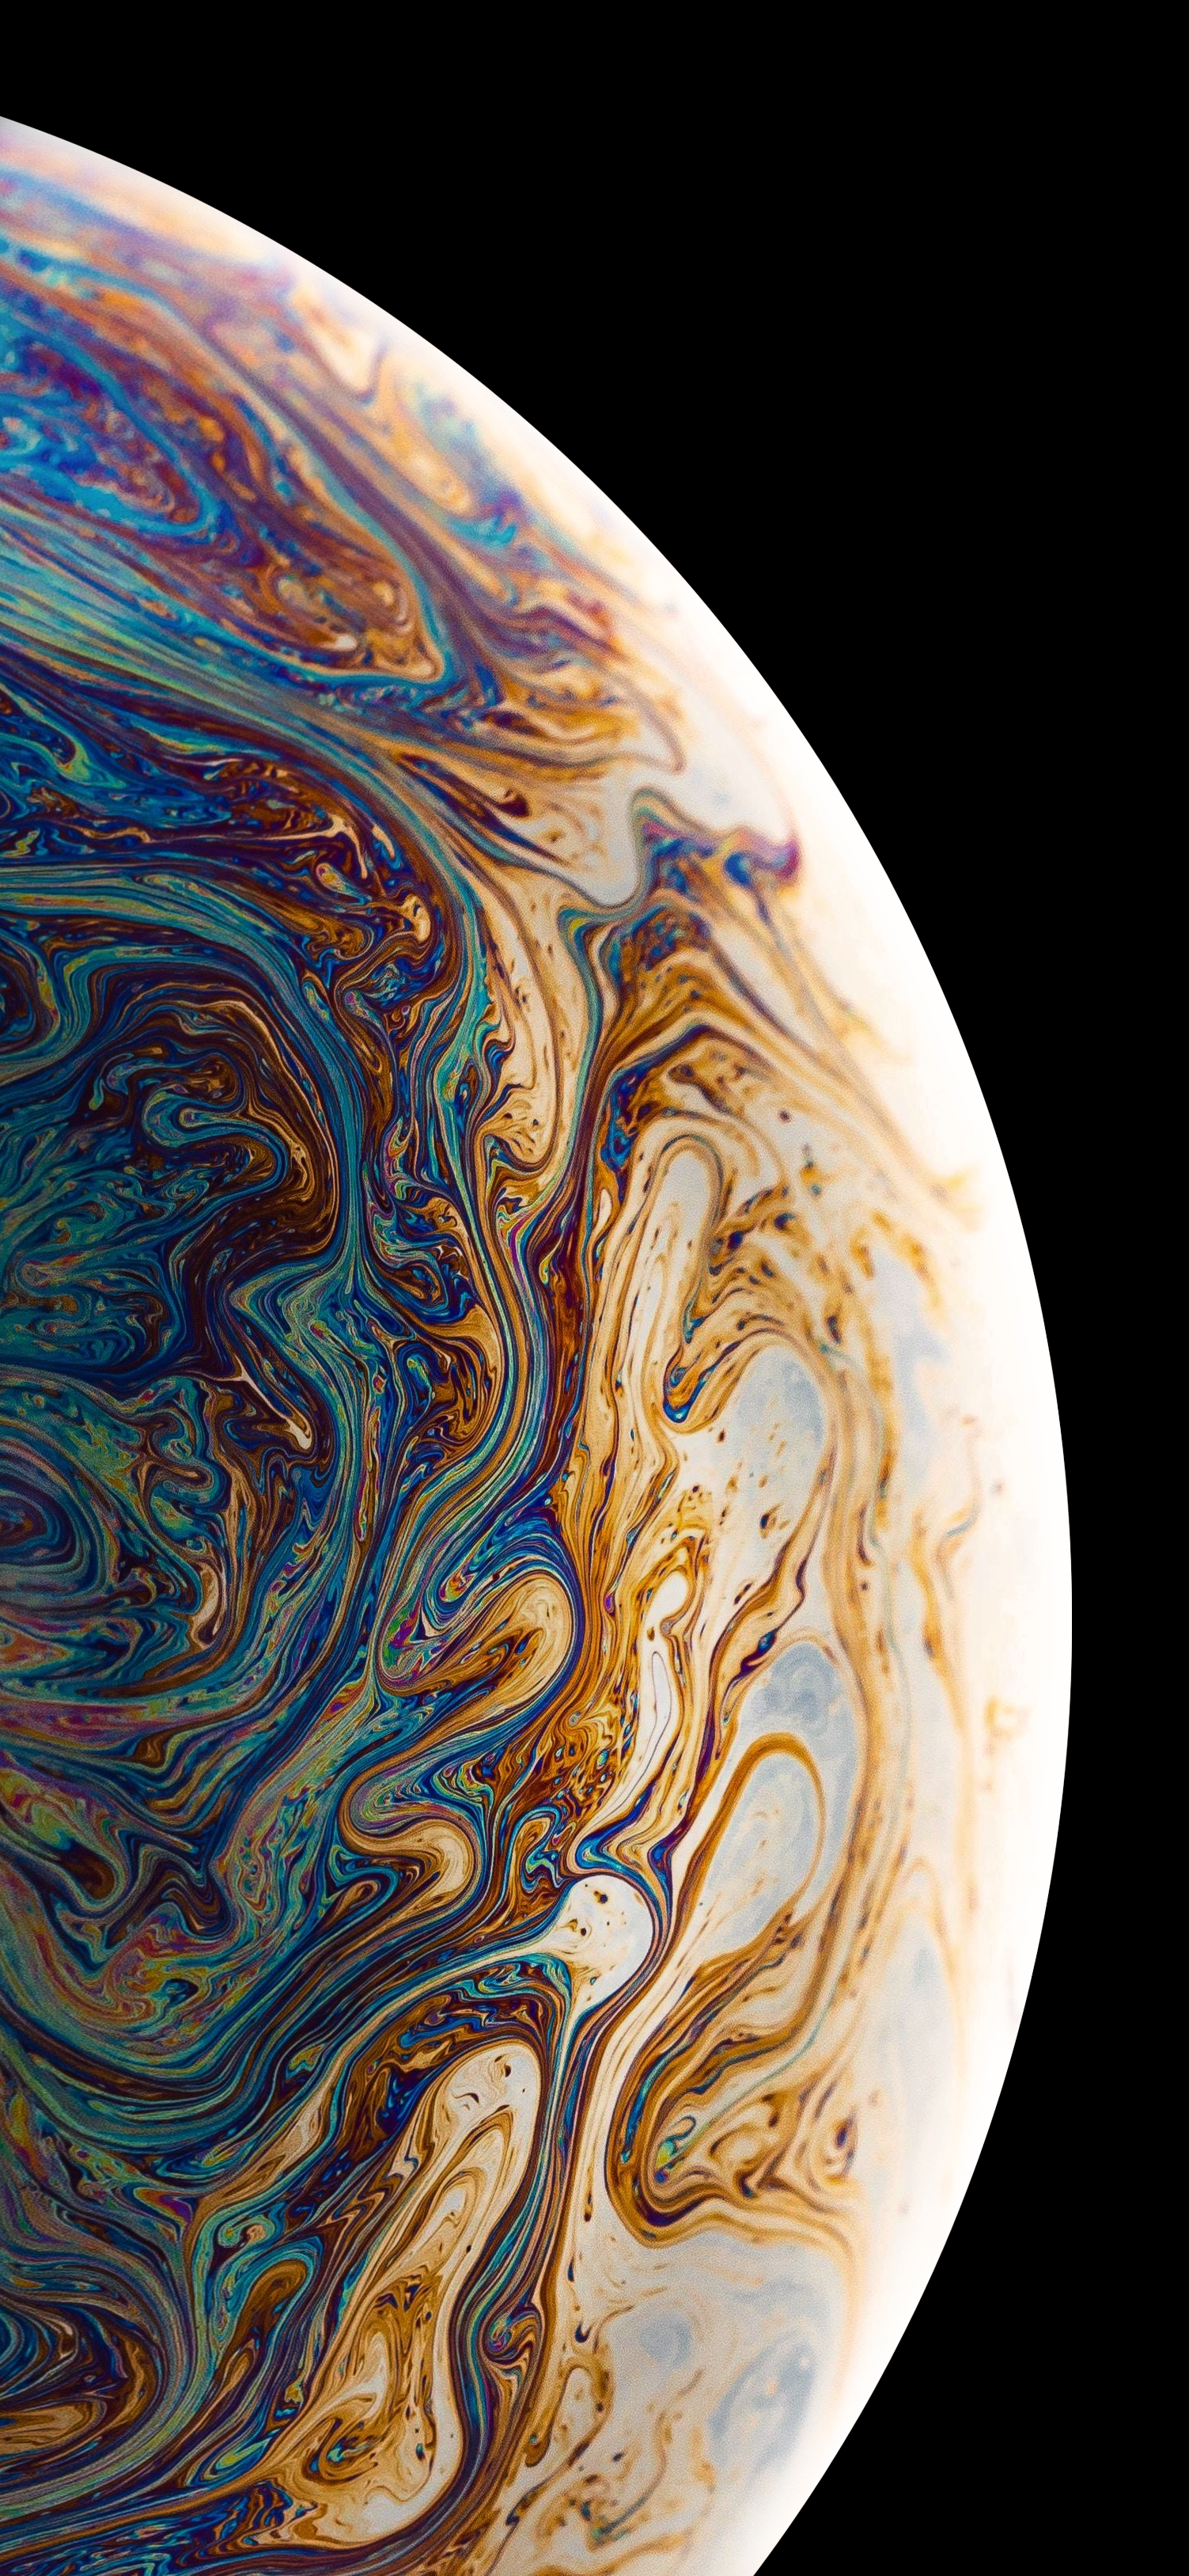 iPhone XI Concept Wallpaper   Wallpapers Central 1503x3255